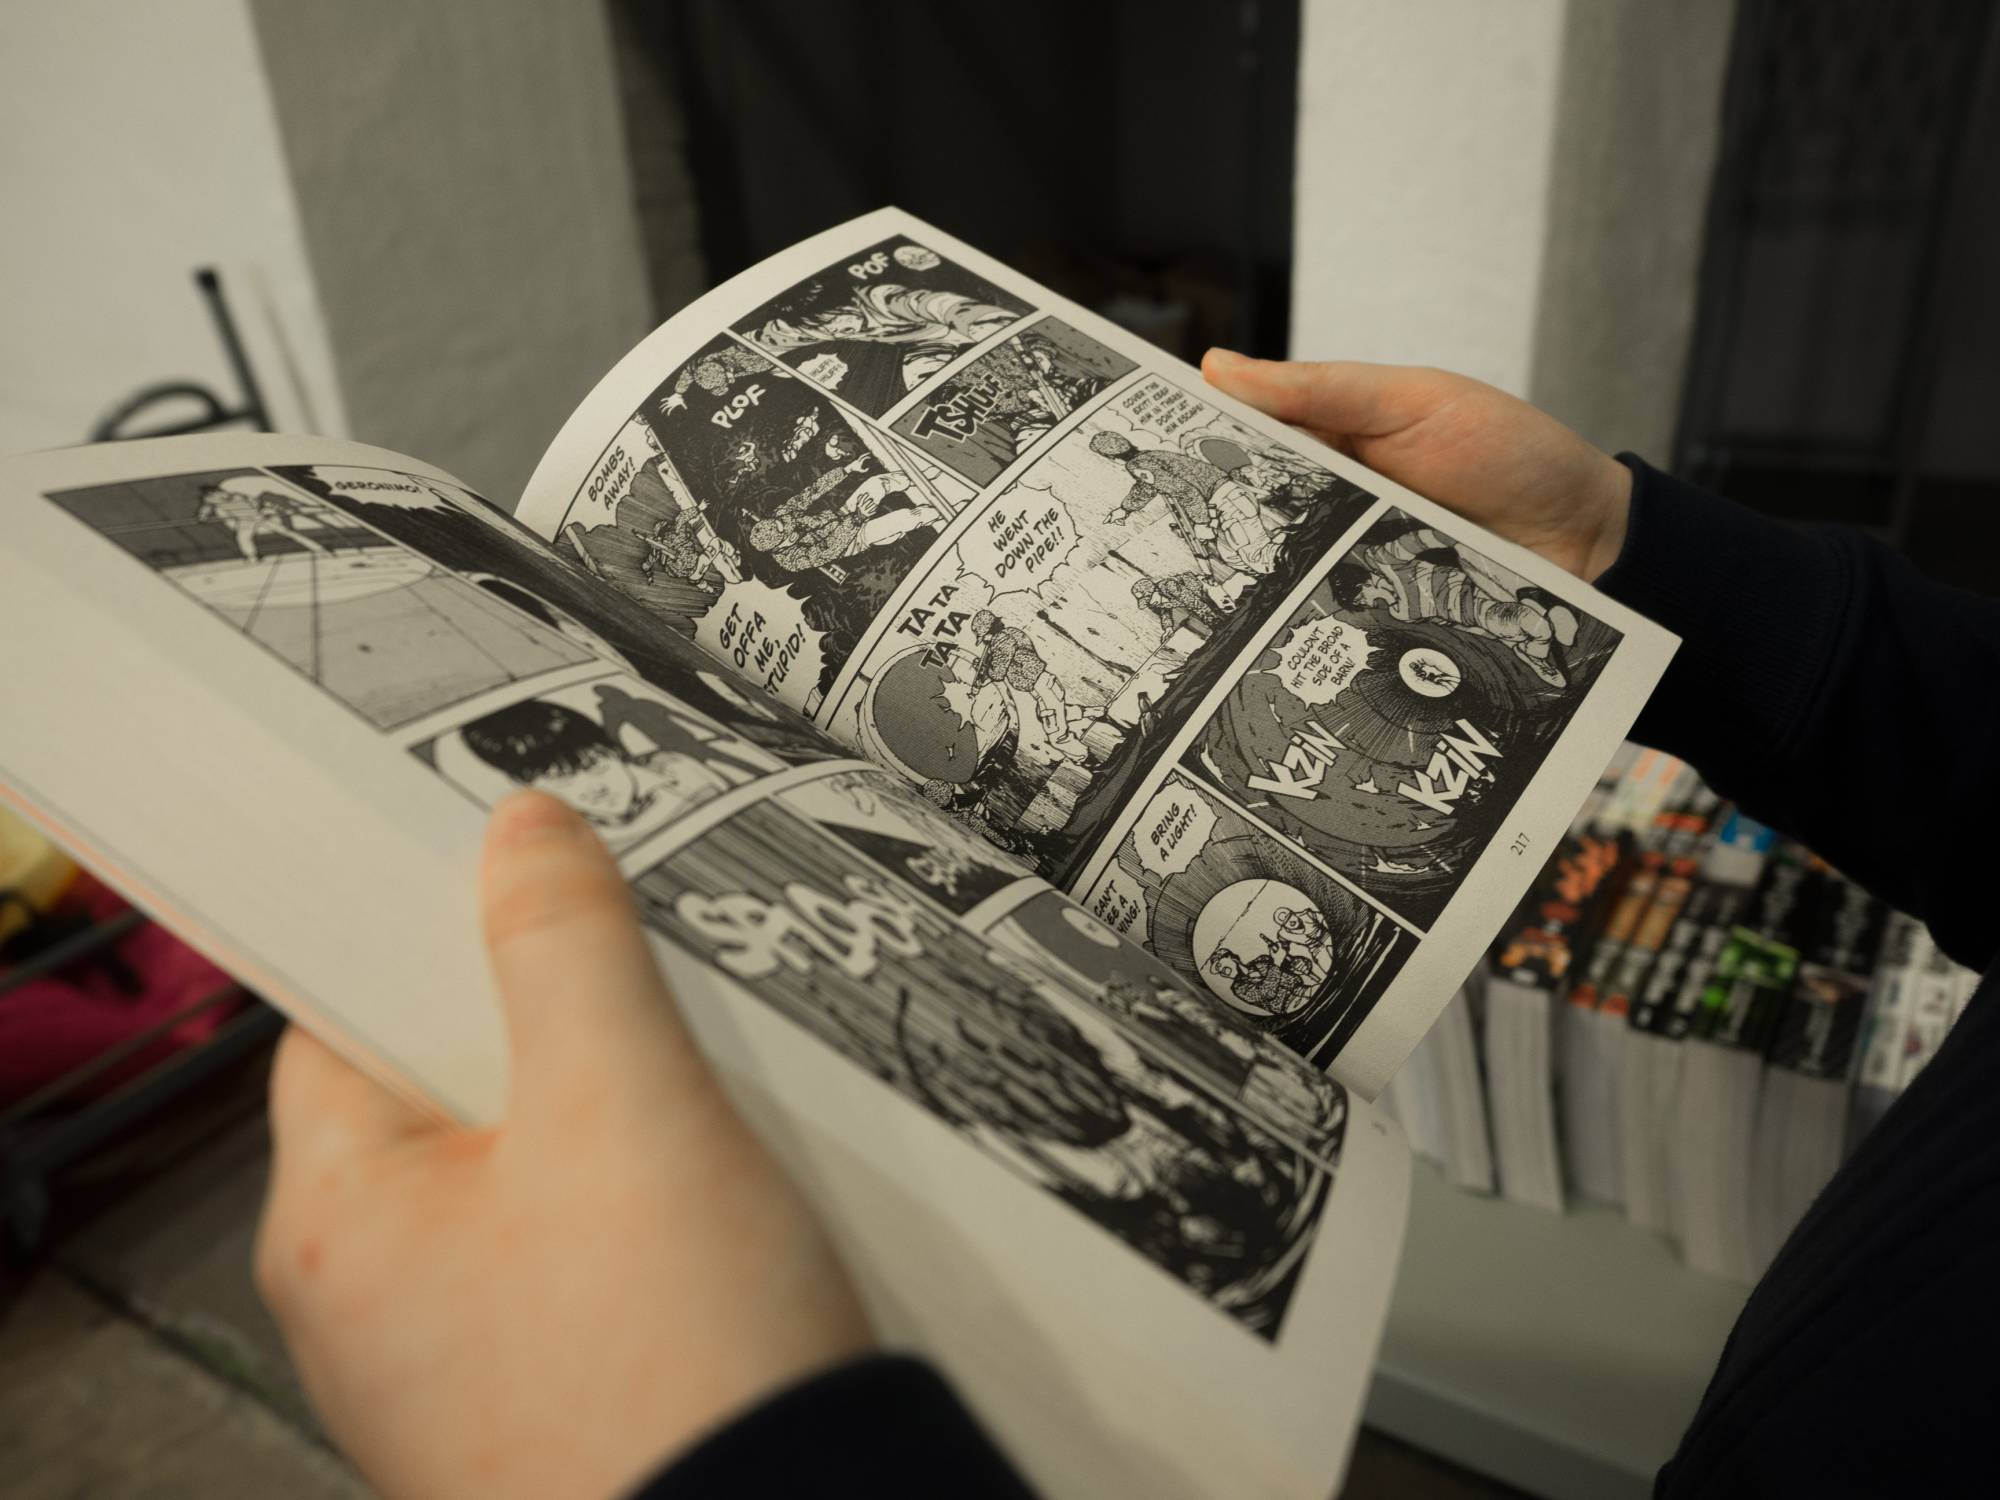 Person holding comic book